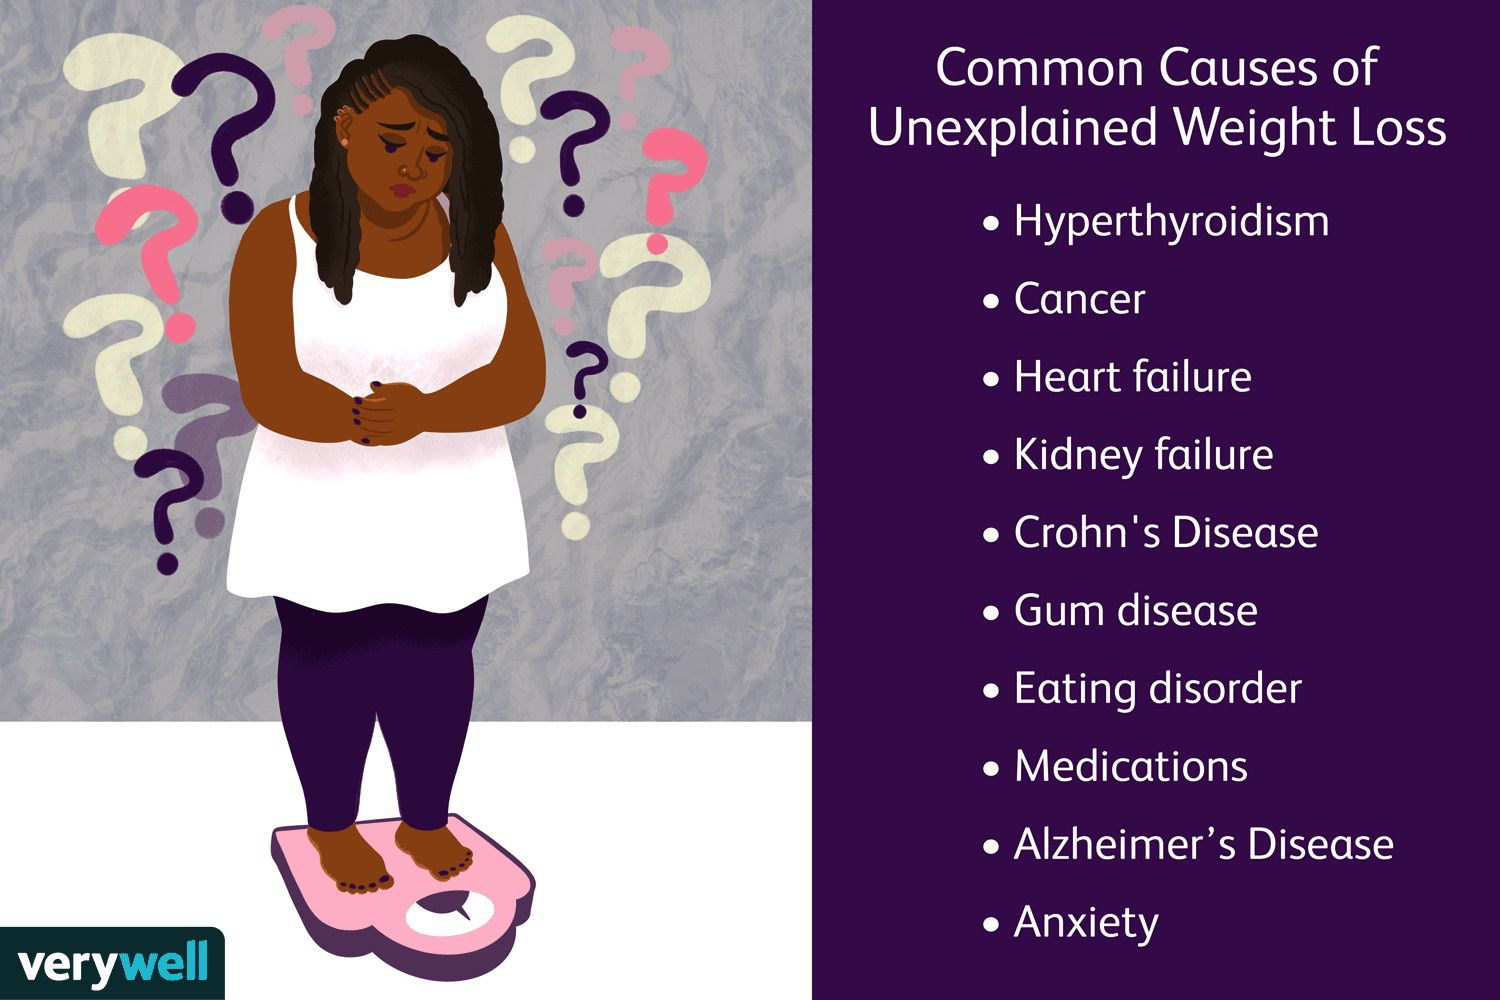 common causes of unexplained weight loss